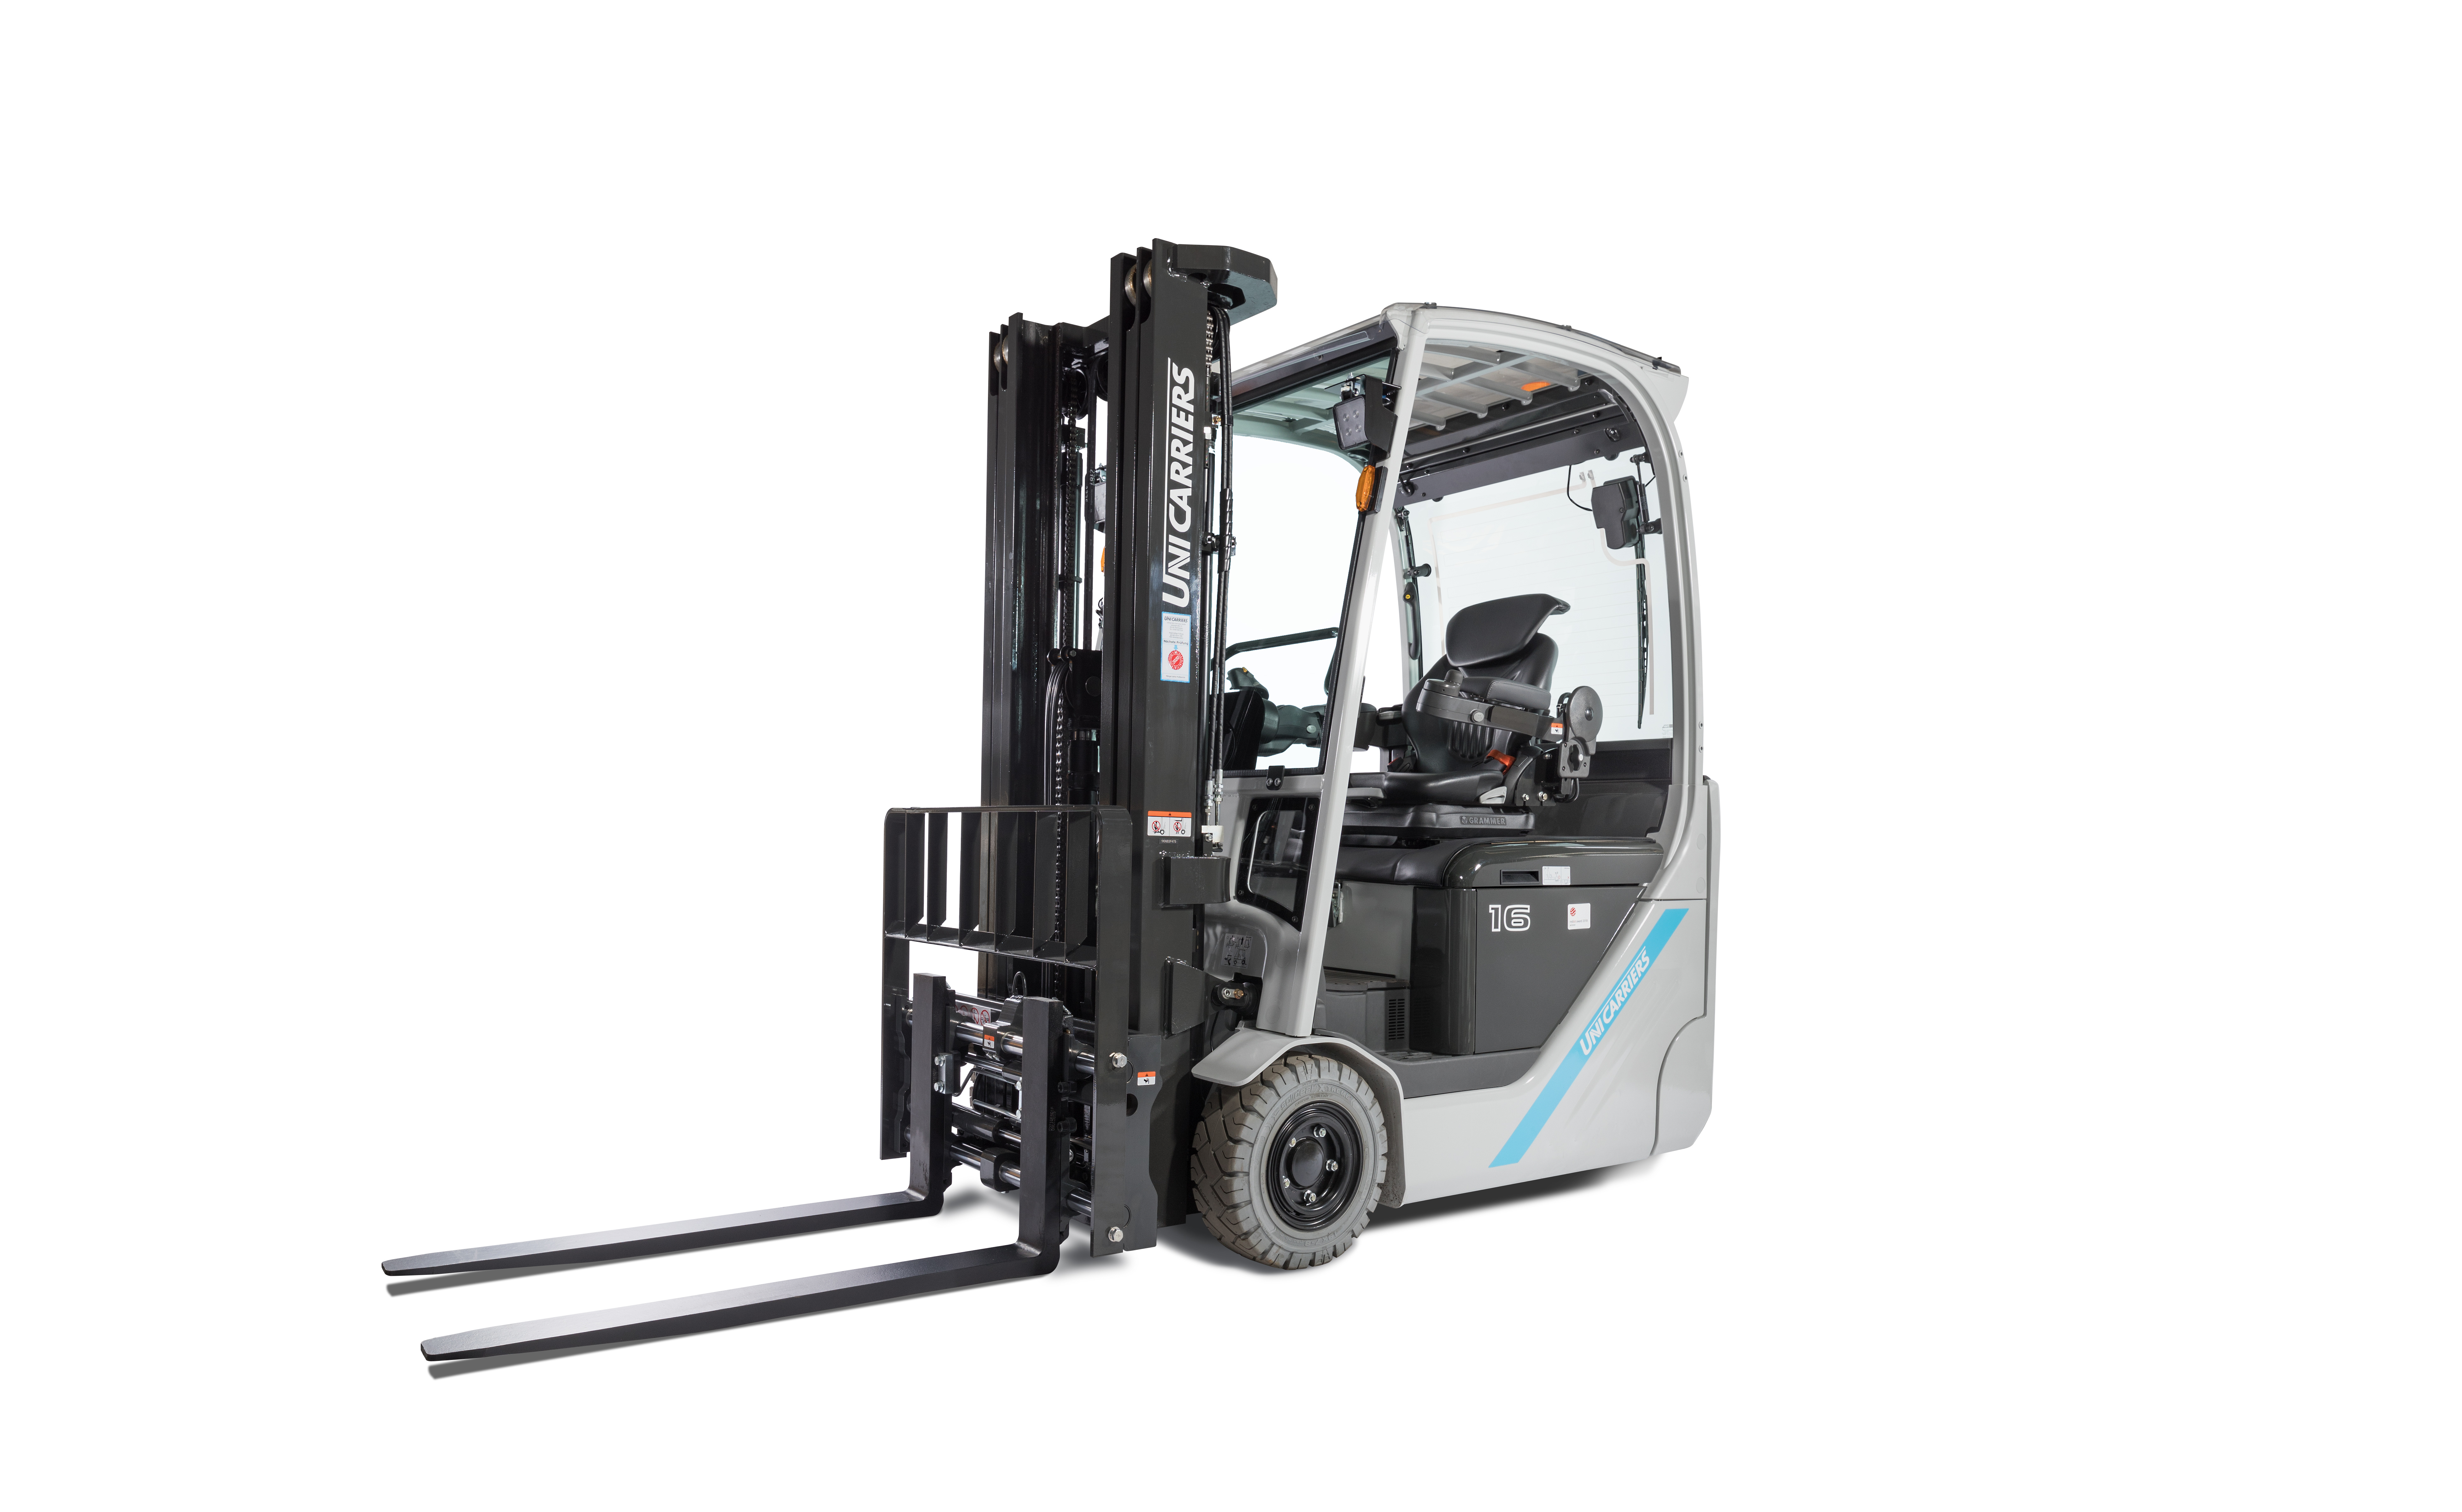 2 UniCarriers TX3 IFOY Award 2019 UniCarriers